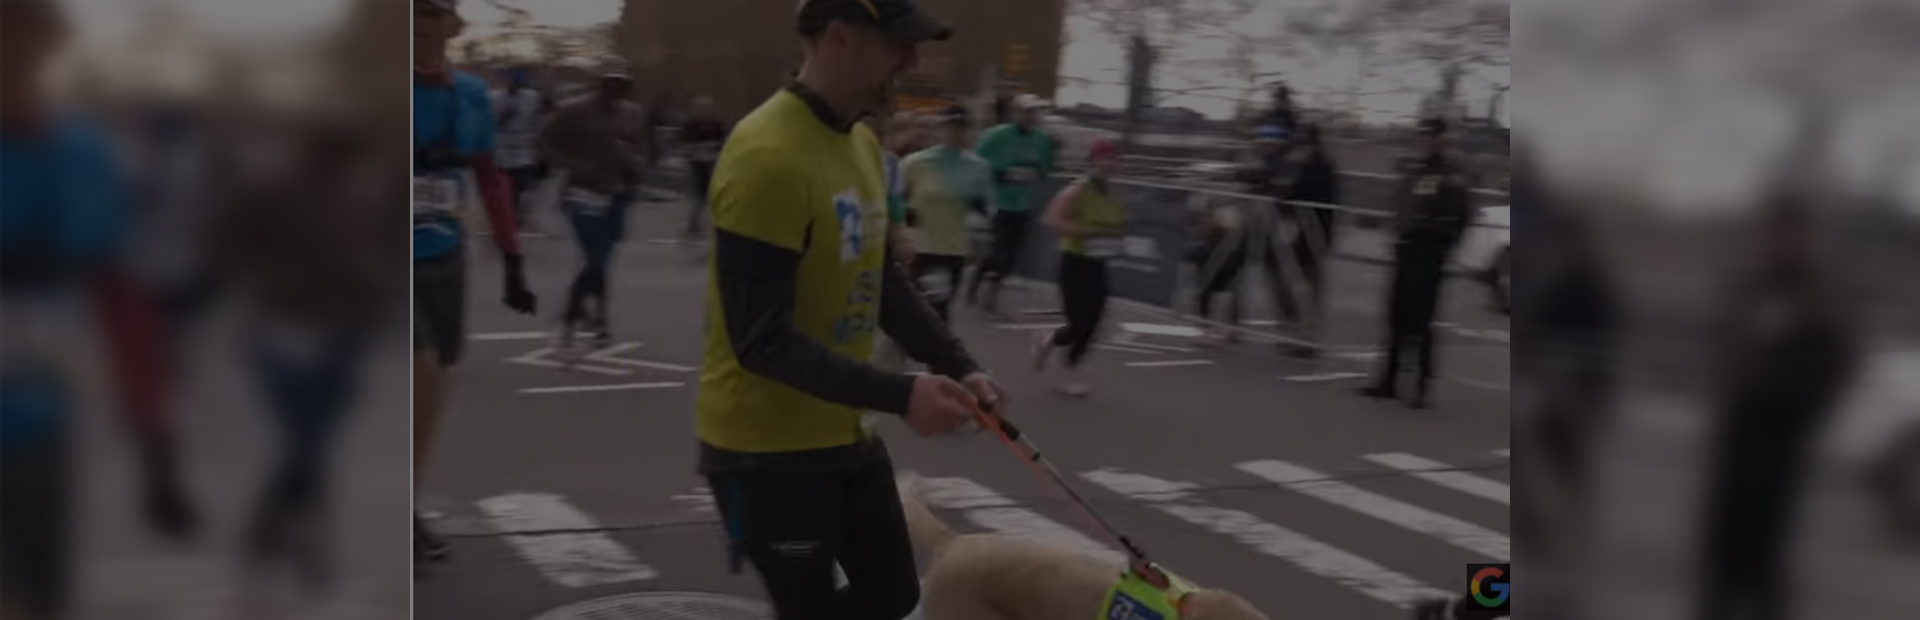 Project Guideline uses AI to help partially sighted runners navigate